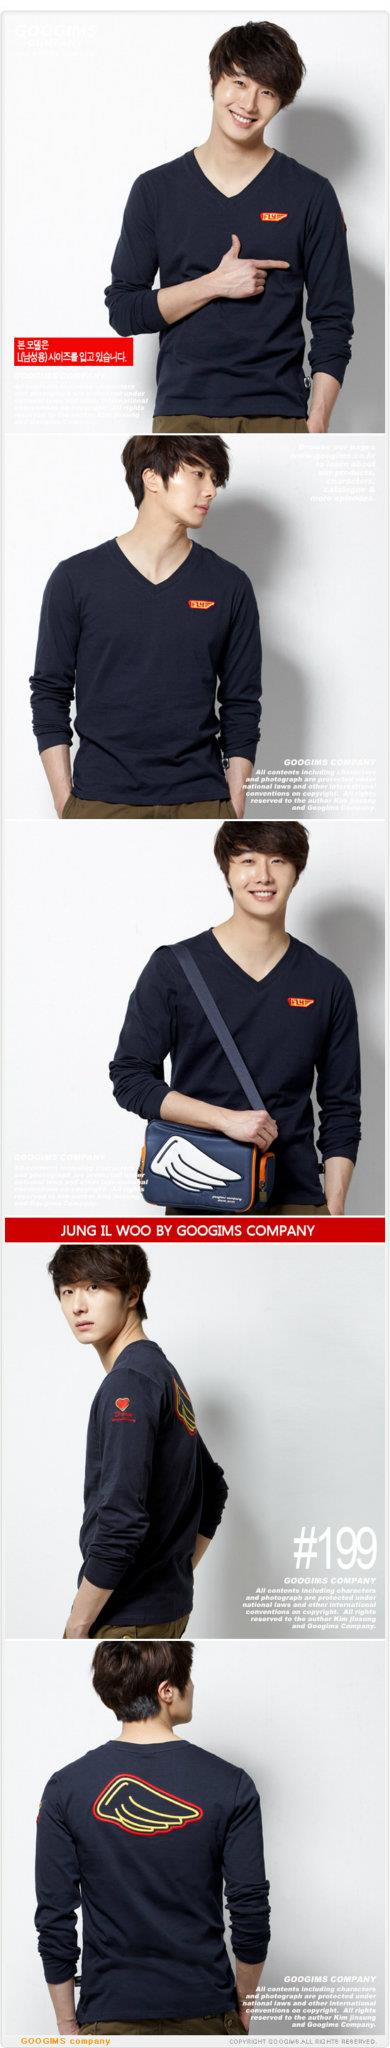 2011 10 Jung II-woo for Googims. Part 100012